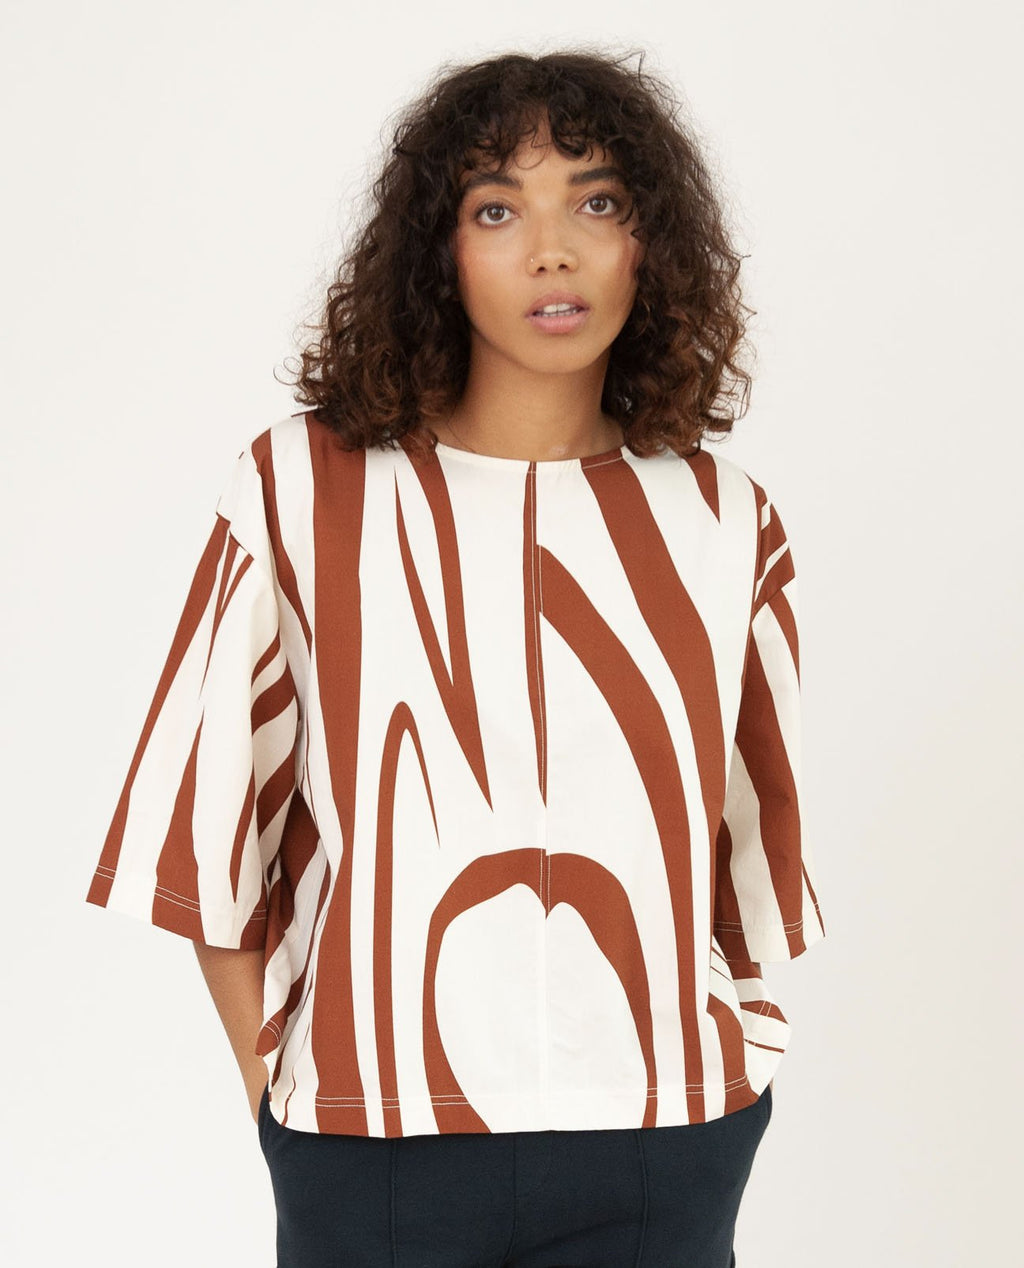 PATRICIA-PAIGE Organic Cotton Top In Ecru & Rust